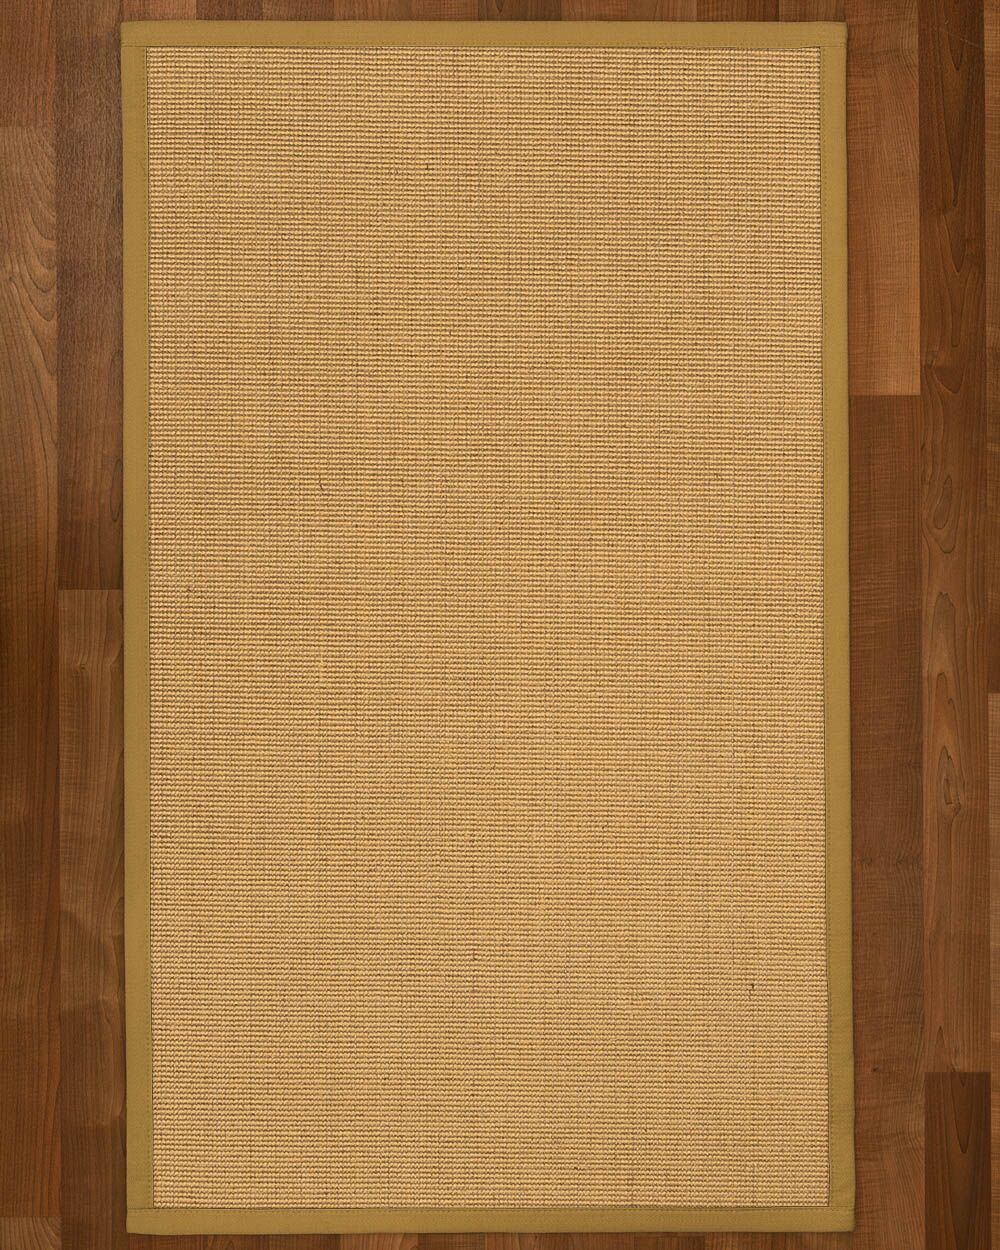 Lanie Hand-Woven Beige Area Rug Rug Size: Rectangle 9' X 12'